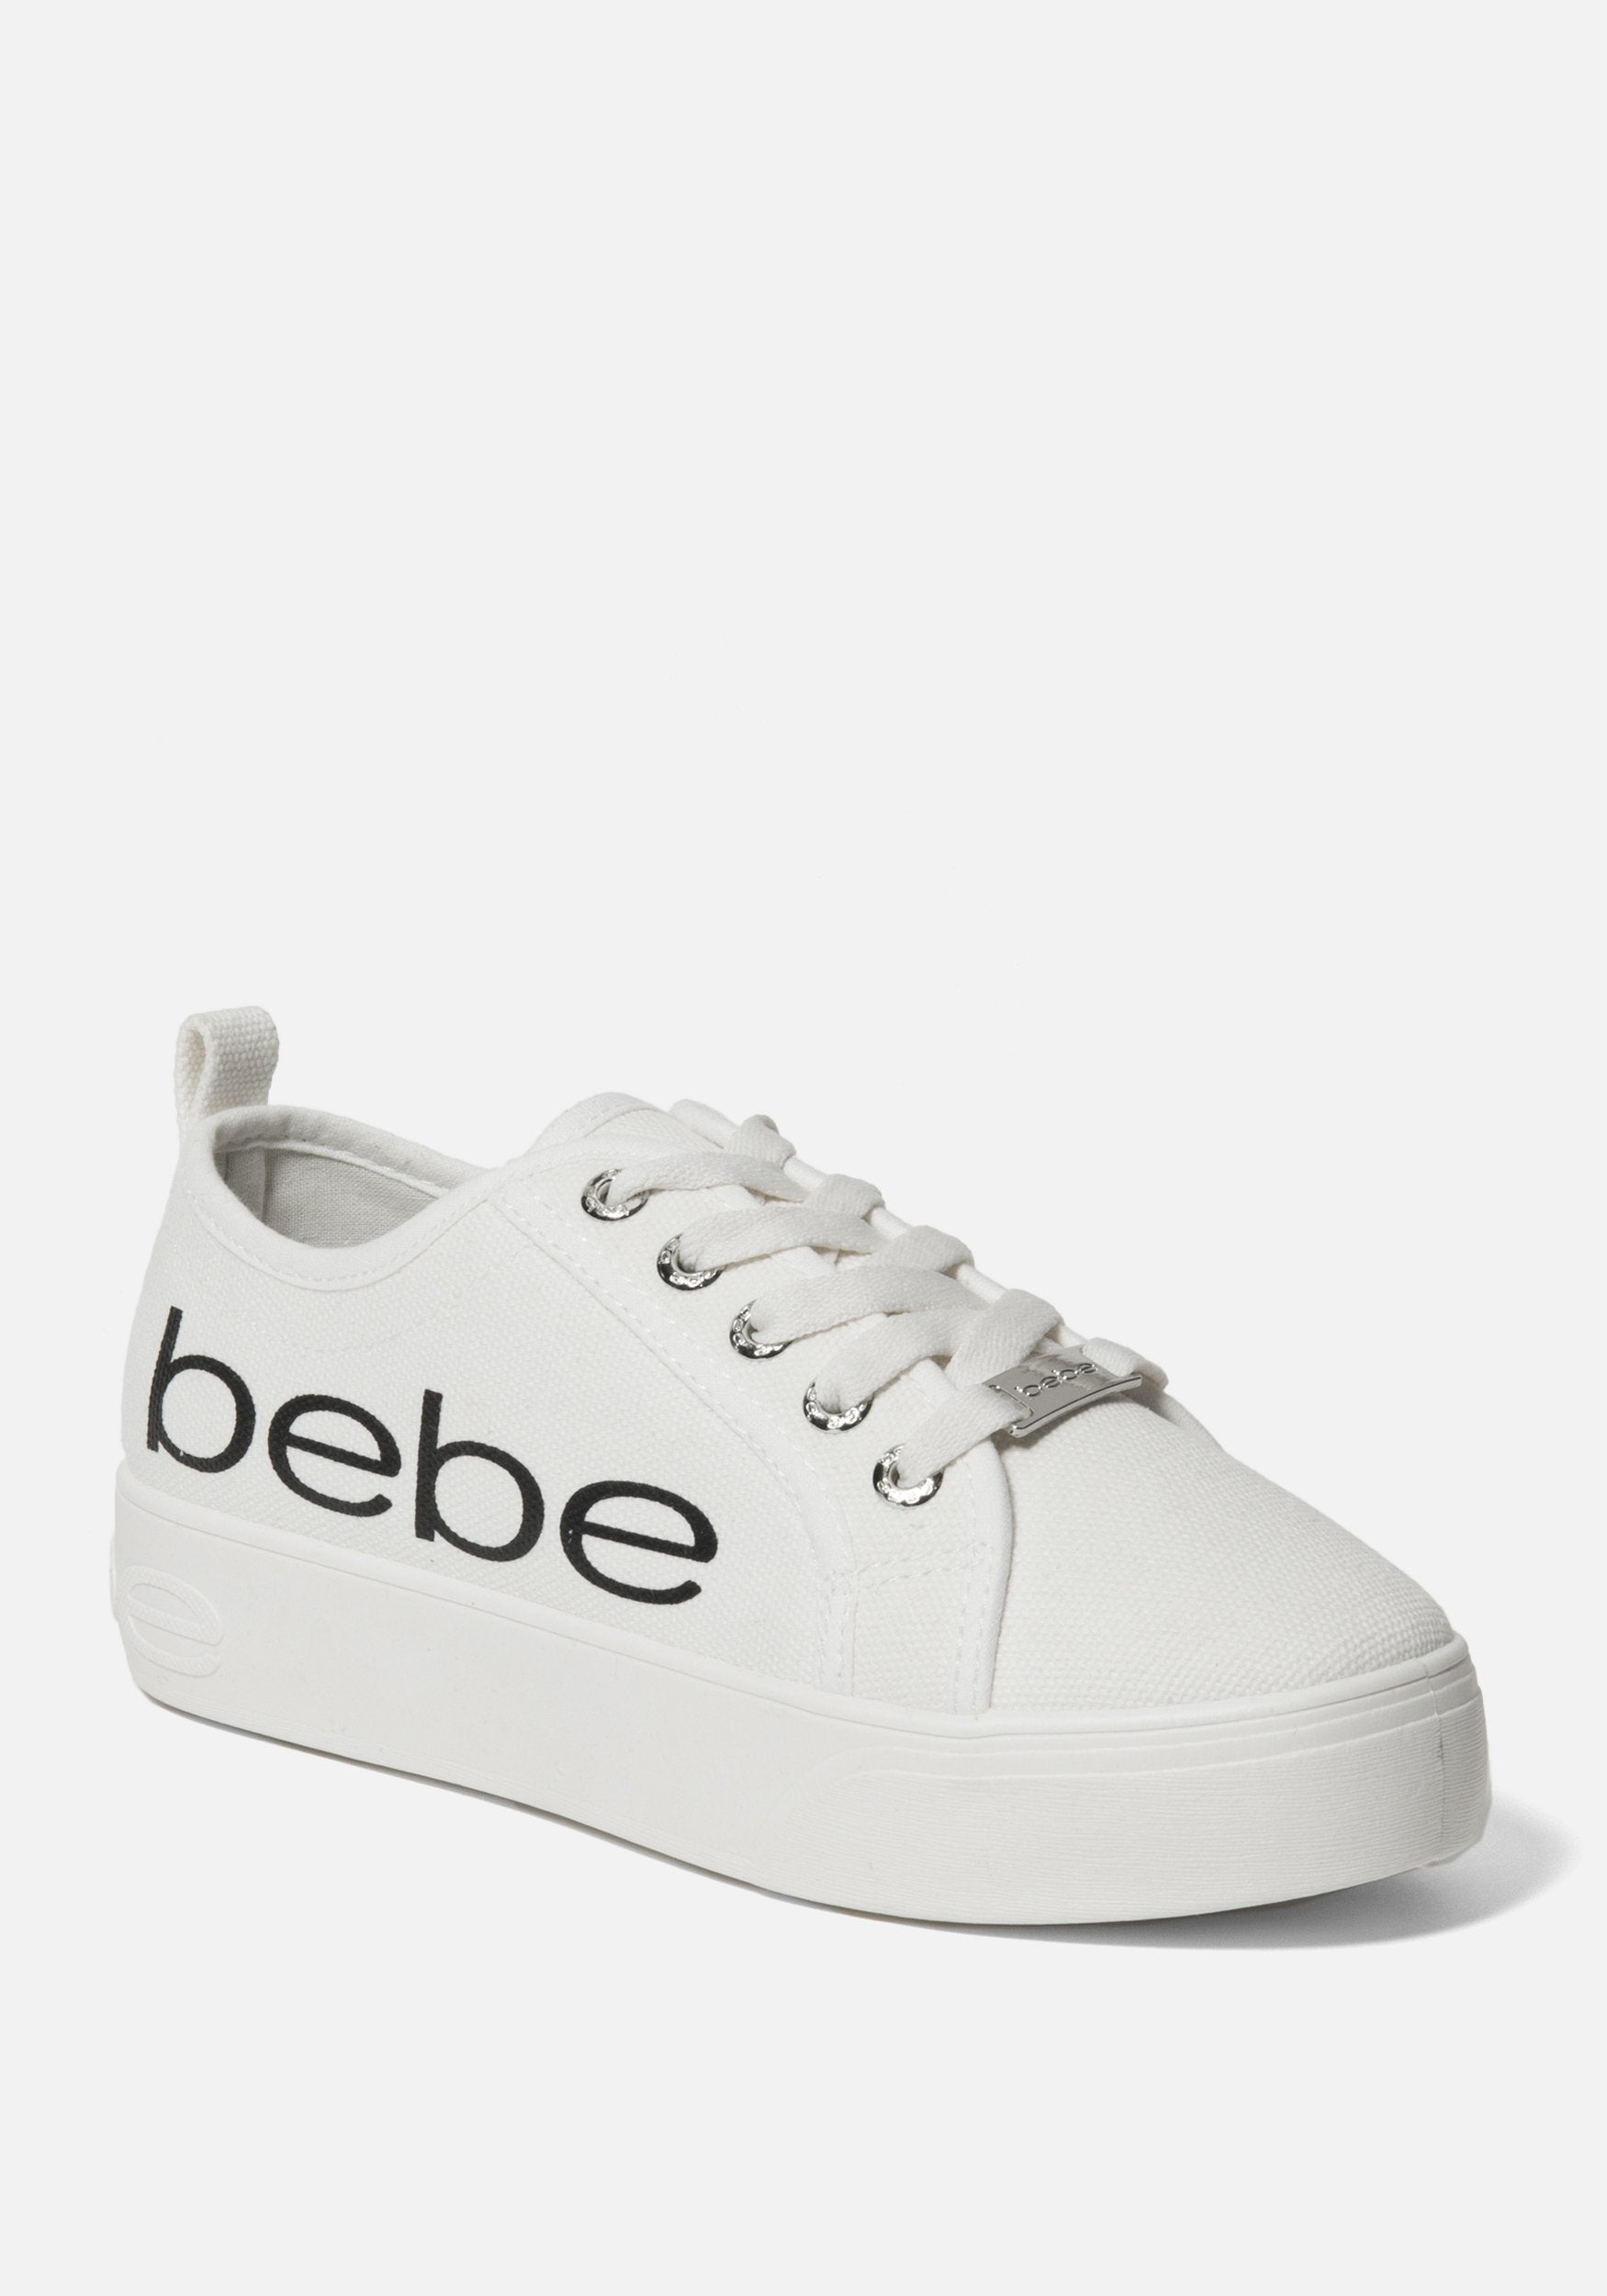 Bebe Women's Destini Platform Sneakers, Size 6 in White Synthetic